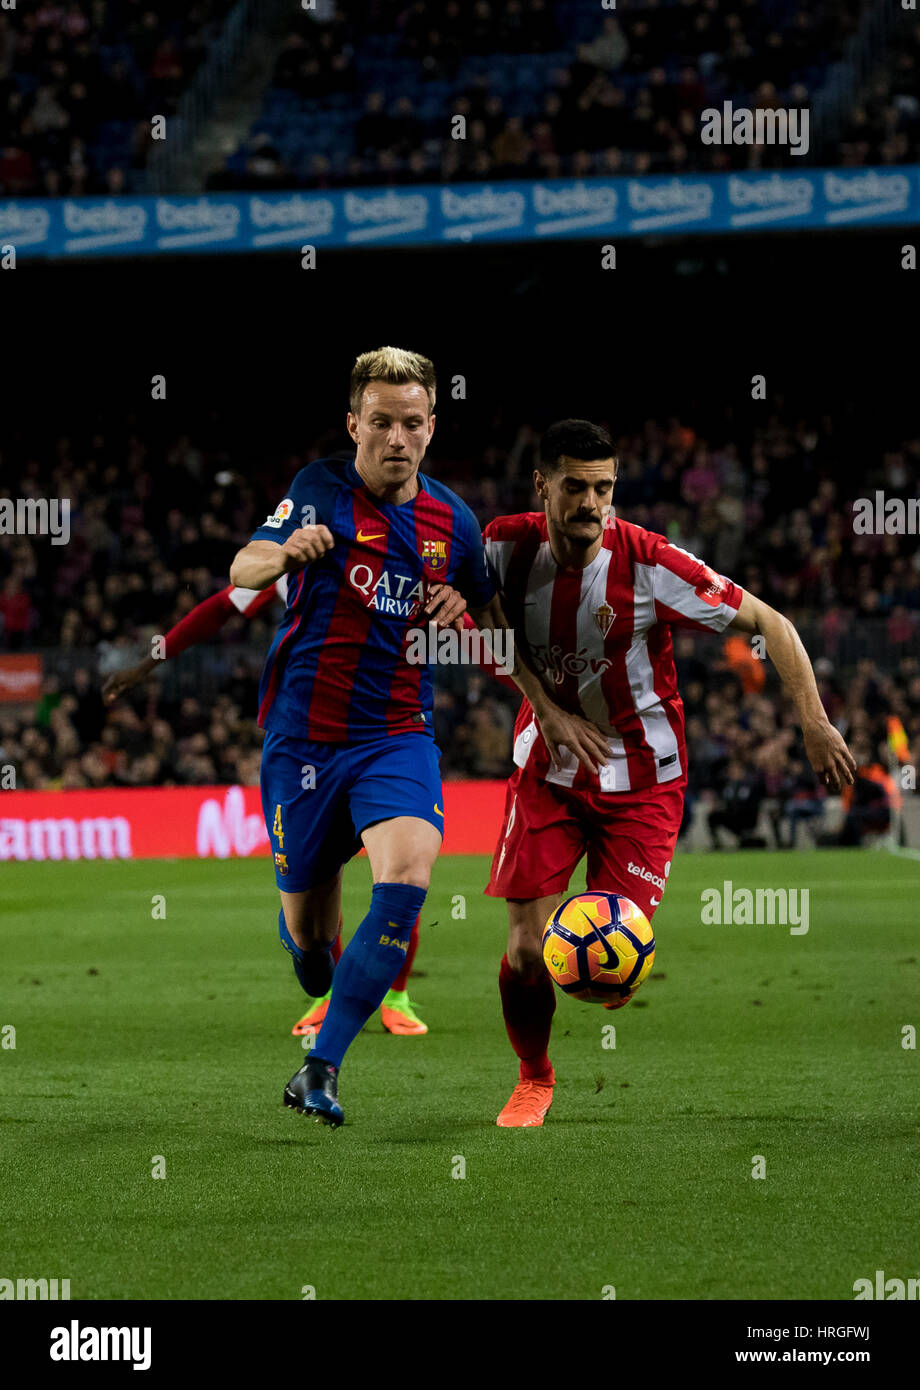 Camp Not Stadium, Barcelona, Spain. 1st March, 2017. Sergio and Rikitic fight the ball at Camp Nou Stadium, Barcelona, - Stock Image